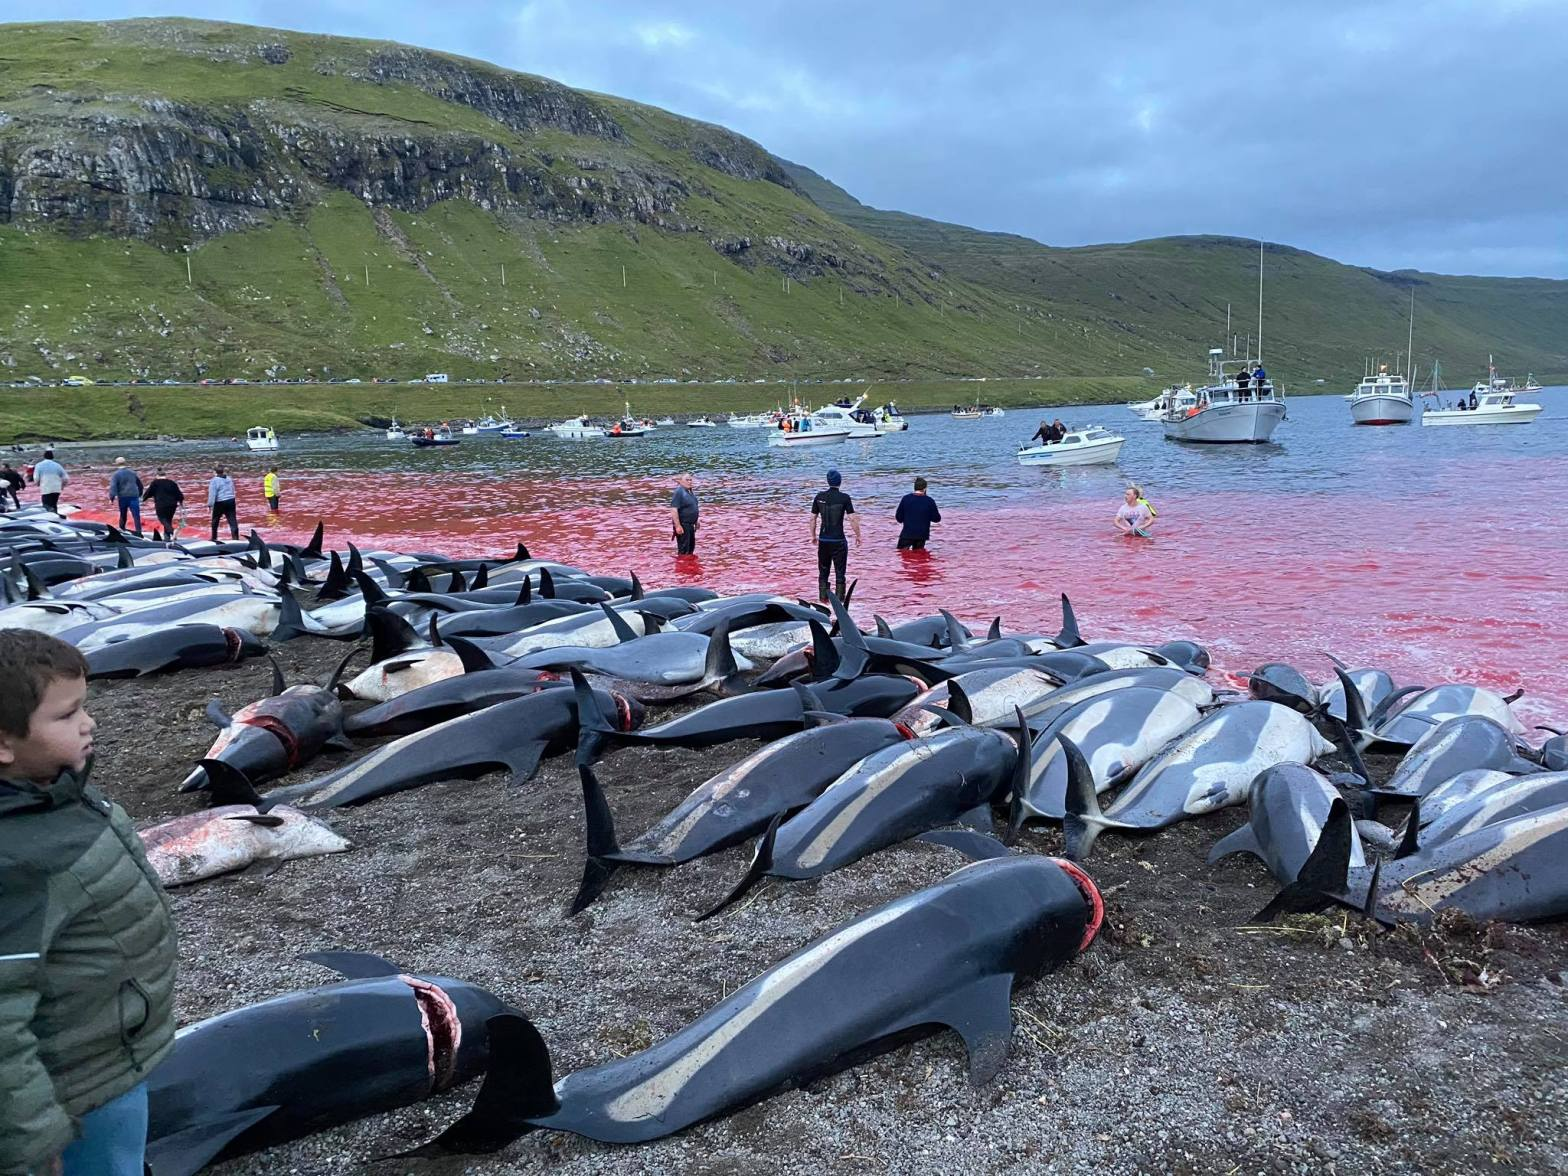 1428 Dolphins Slaughtered in the Faroe Islands Sunday Night